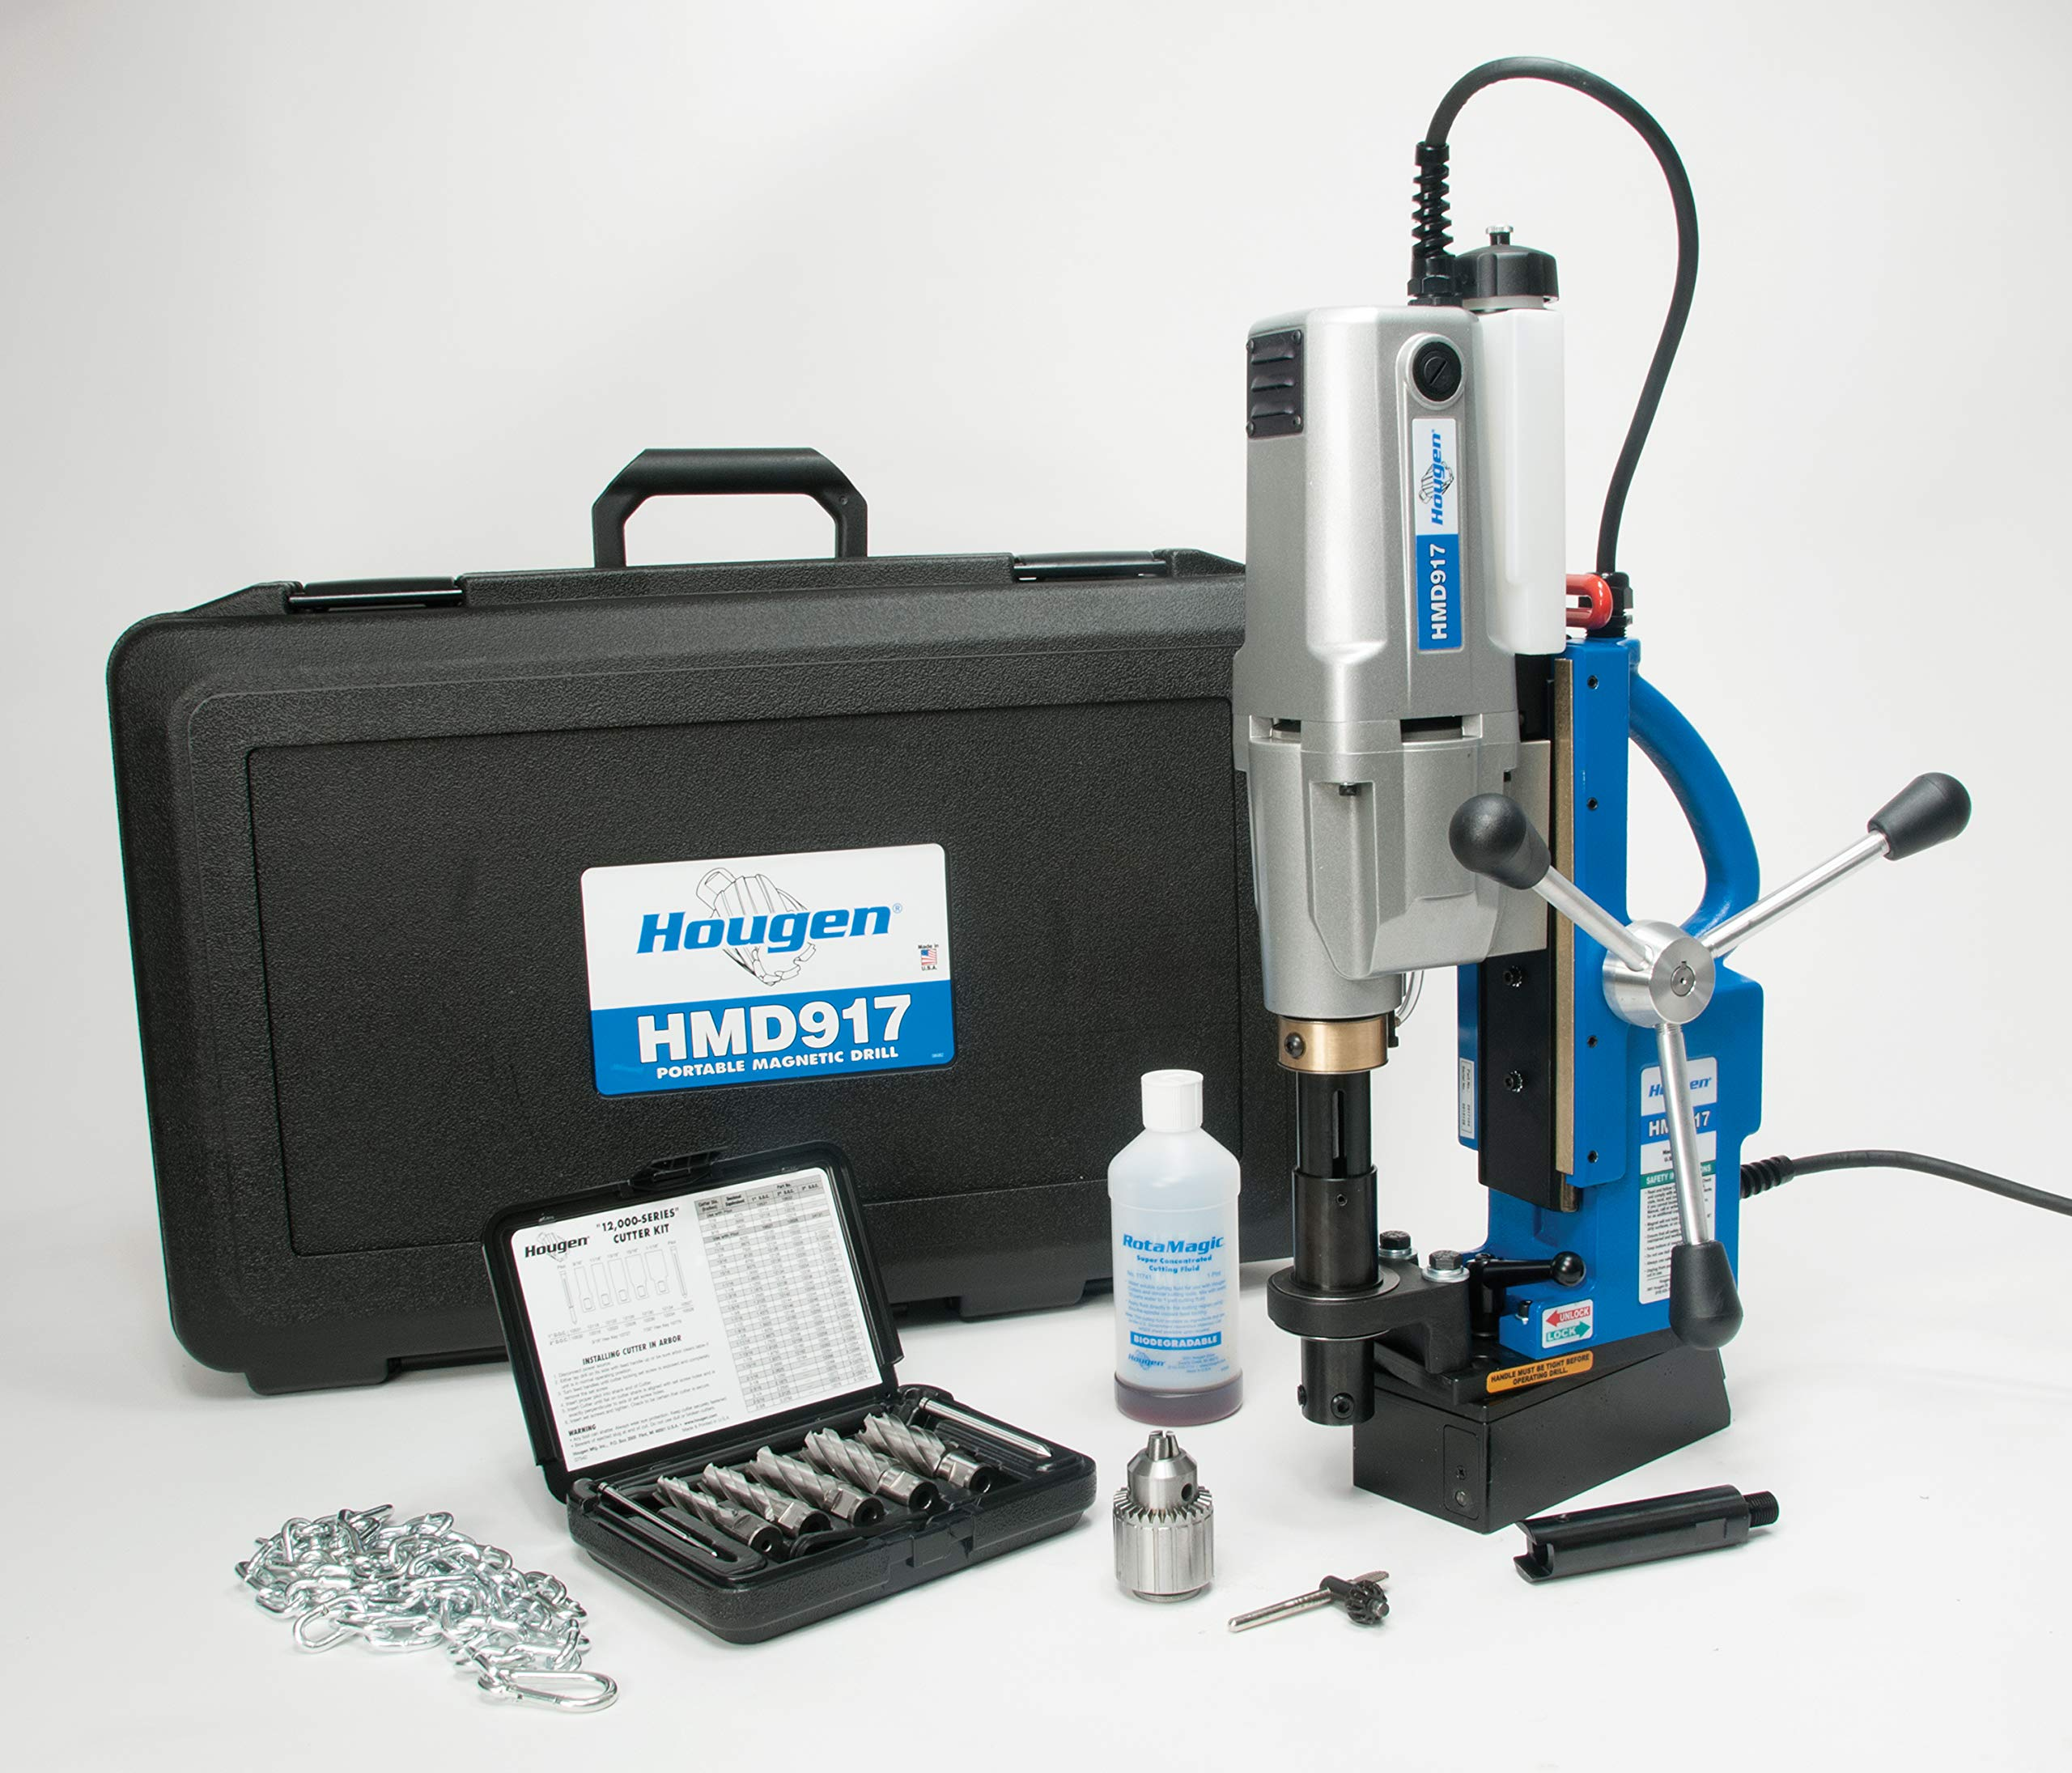 Hougen HMD917 115-Volt Swivel Base Magnetic Drill 2 Speed/Coolant Bottle Plus 1/2'' Drill Chuck Adapter Plus 12002 Rotabroach Cutter Kit Our Most Powerful Two Speed Mag Drill for Heavy Duty Fabrication